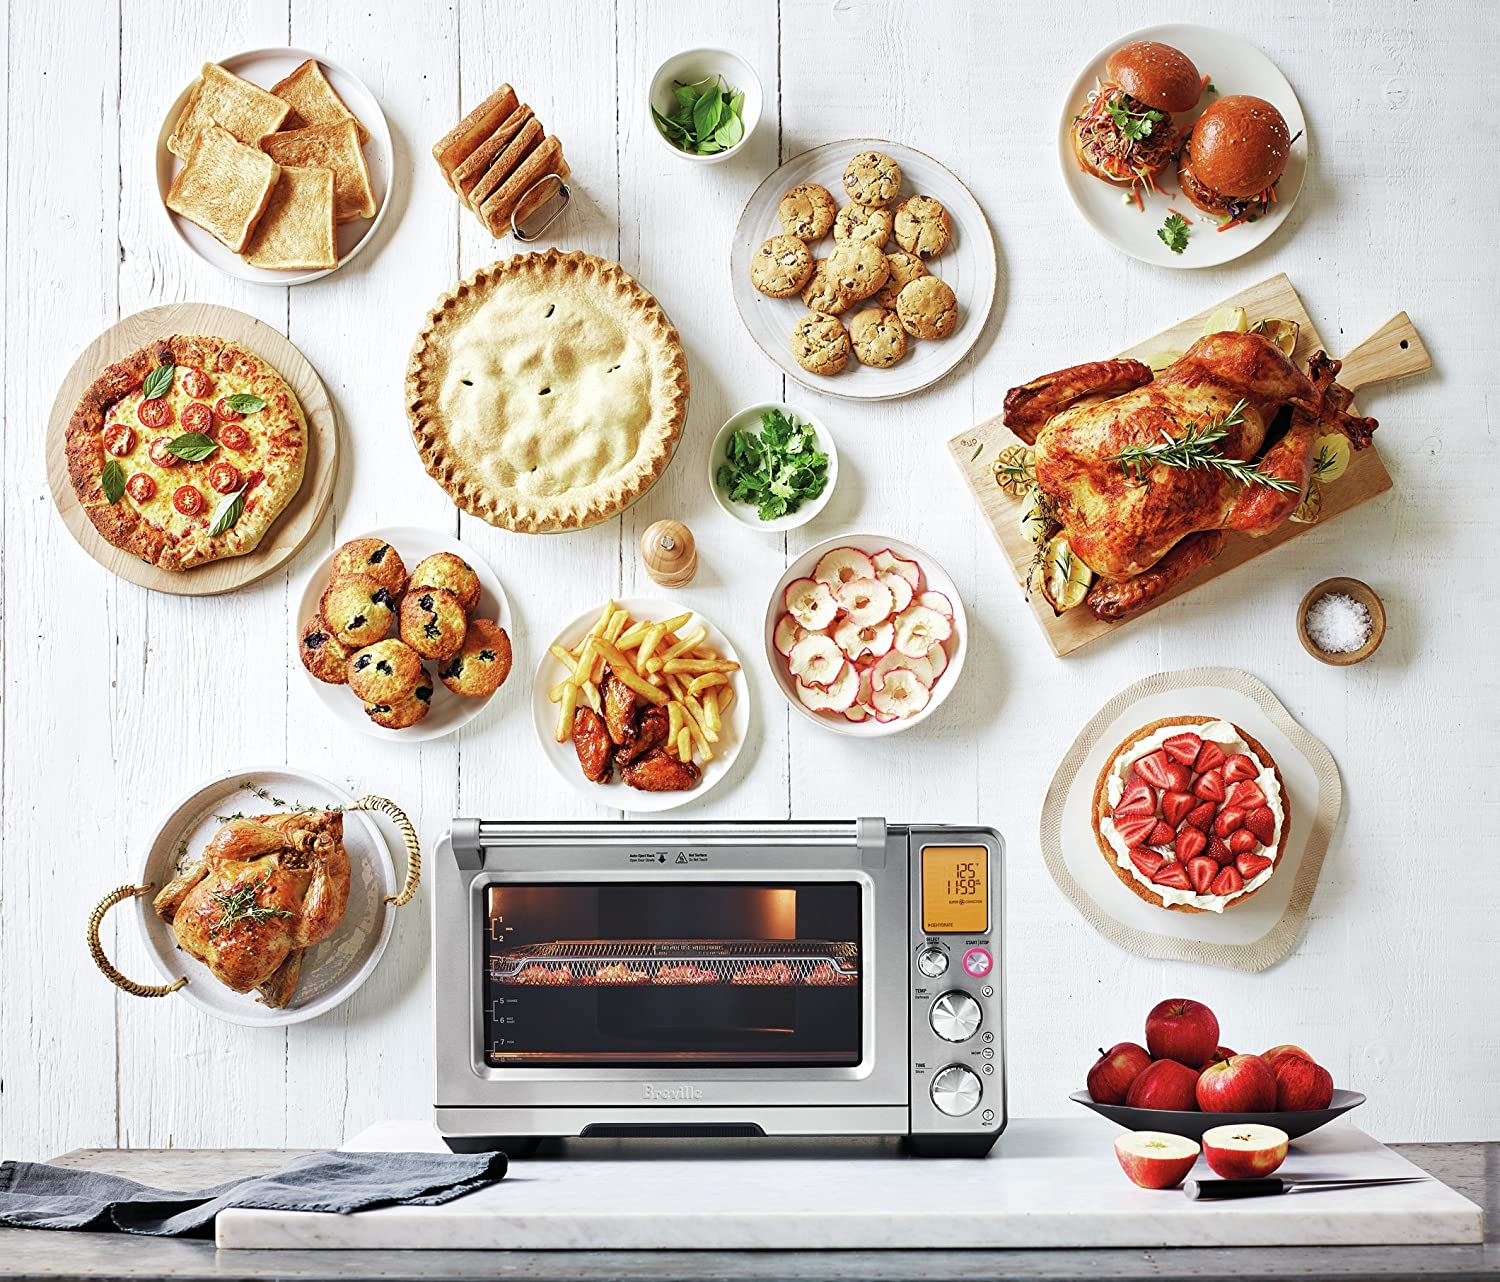 When was the toaster oven invented - Evolution of smart toaster to multi-tasking smart cook